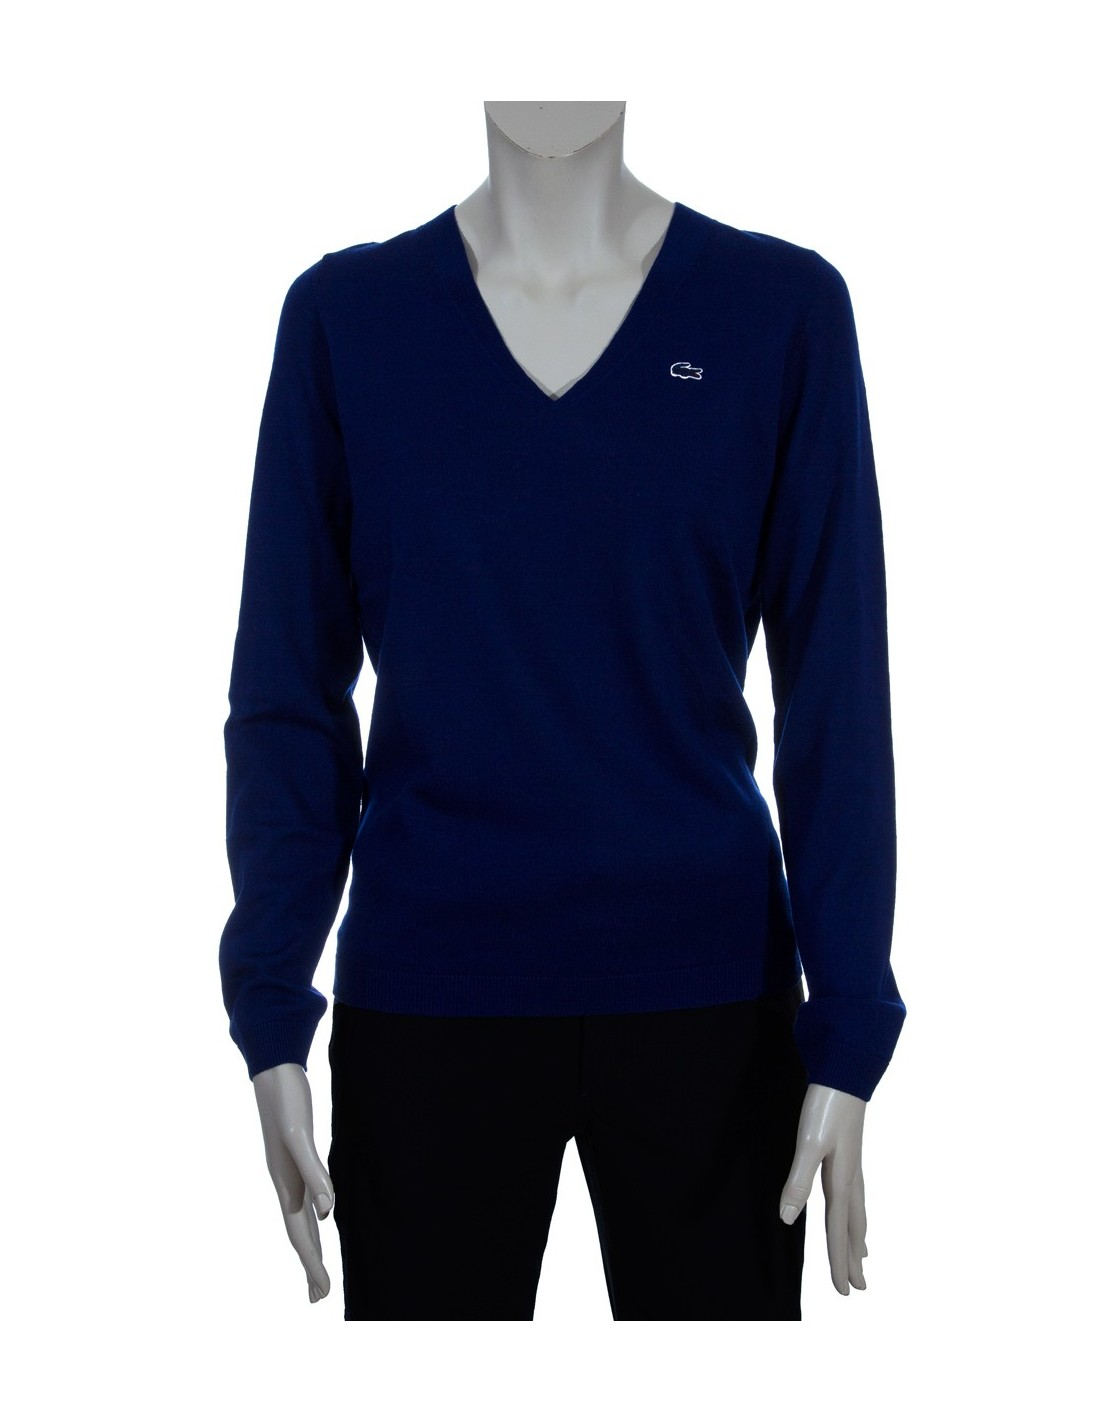 Lacoste Lacoste 0yet6q Lana Pullover 0yet6q Donna Pullover Lana Lacoste Donna Pullover r5wqr4Z